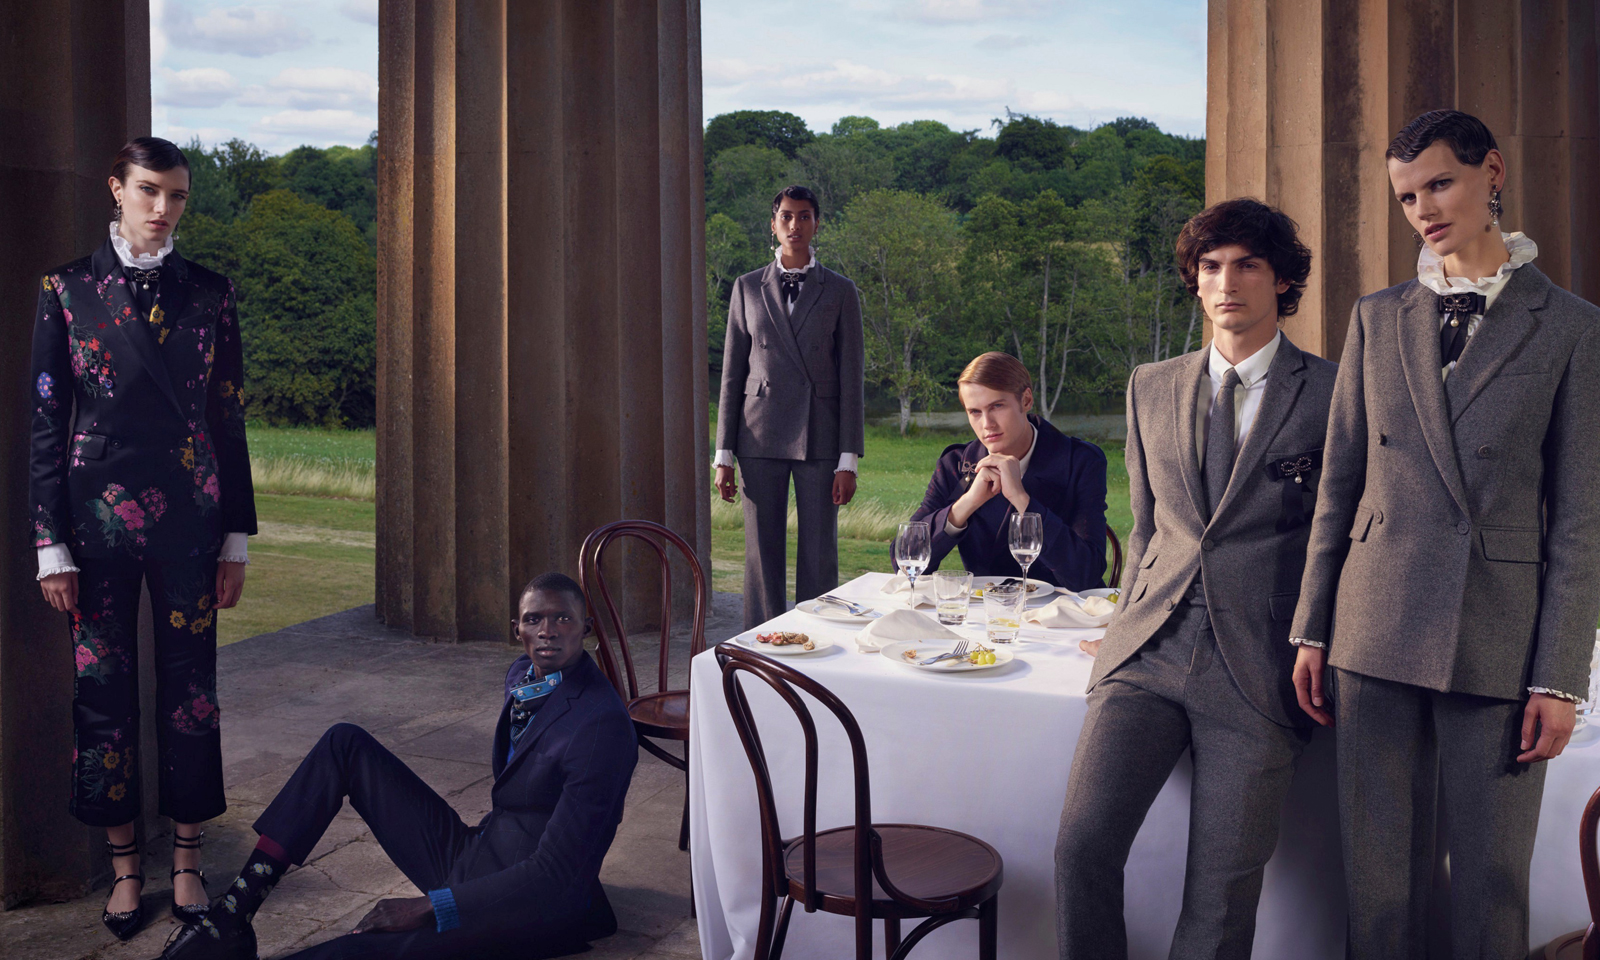 Family Portraits ERDEM x H&M by Photographer Michal Pudelka